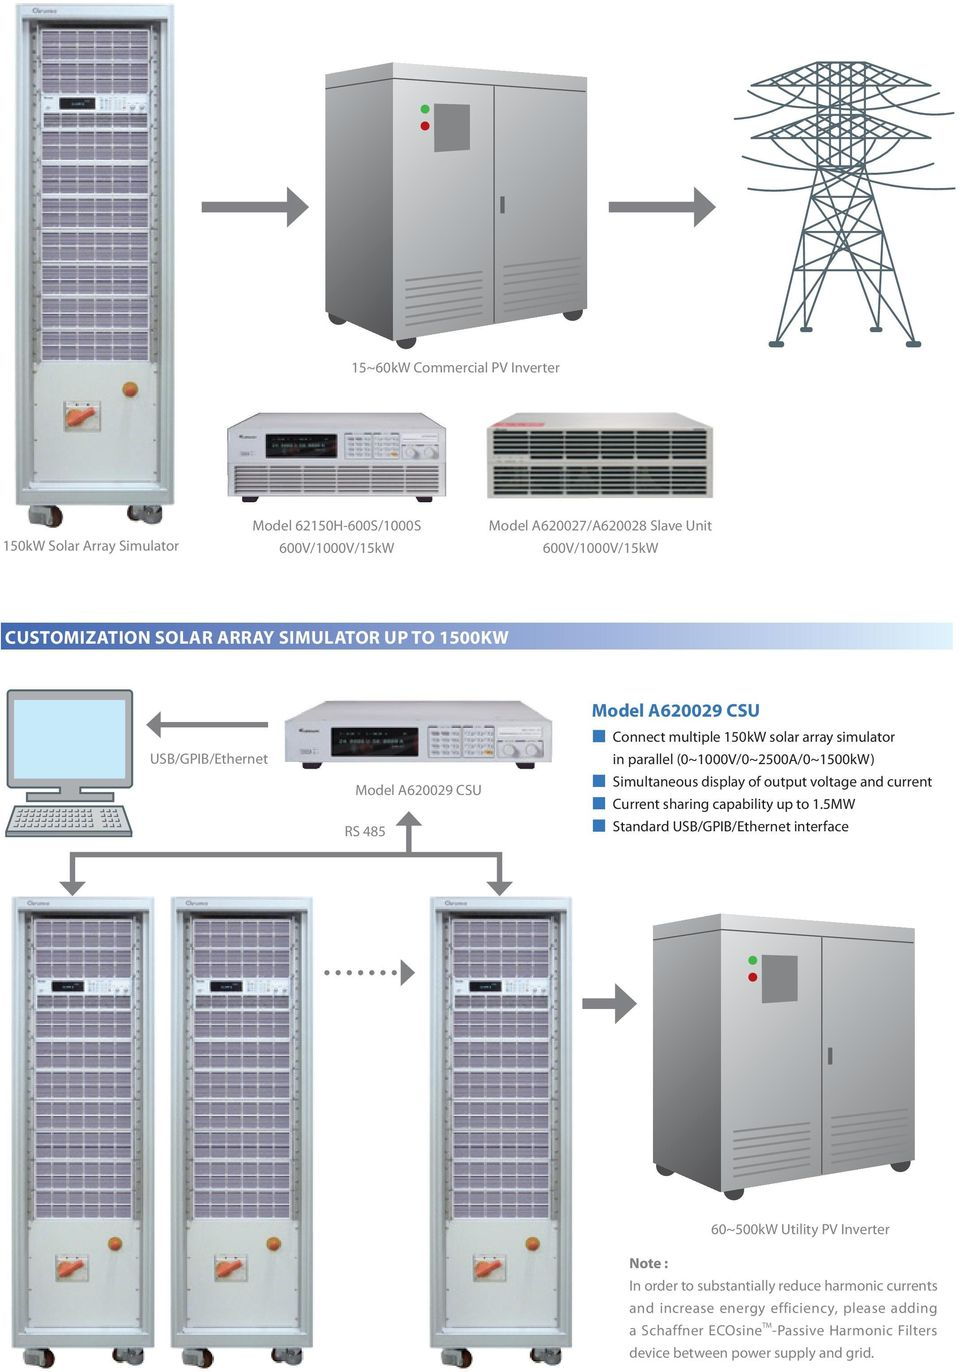 (0~1000V/0~2500A/0~1500kW) Simultaneous display of output voltage and current Current sharing capability up to 1.